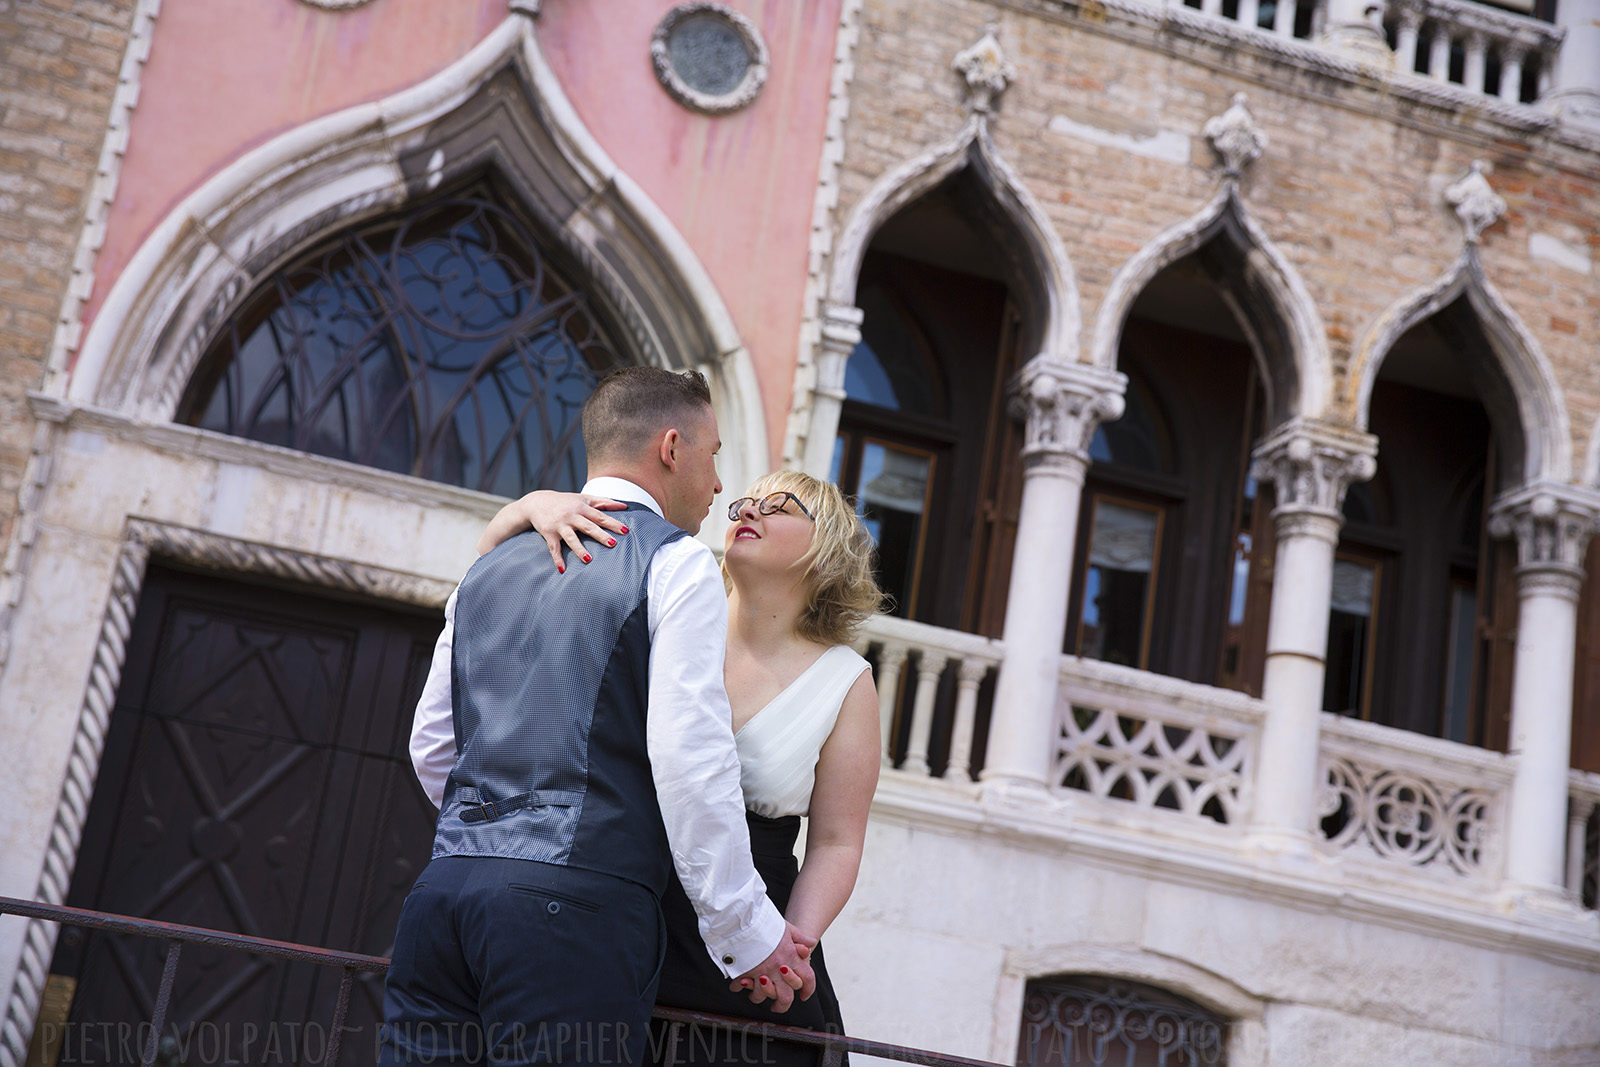 photographer_venice-photography-session-tour-for-couple-anniversary-vacation-20170419_01